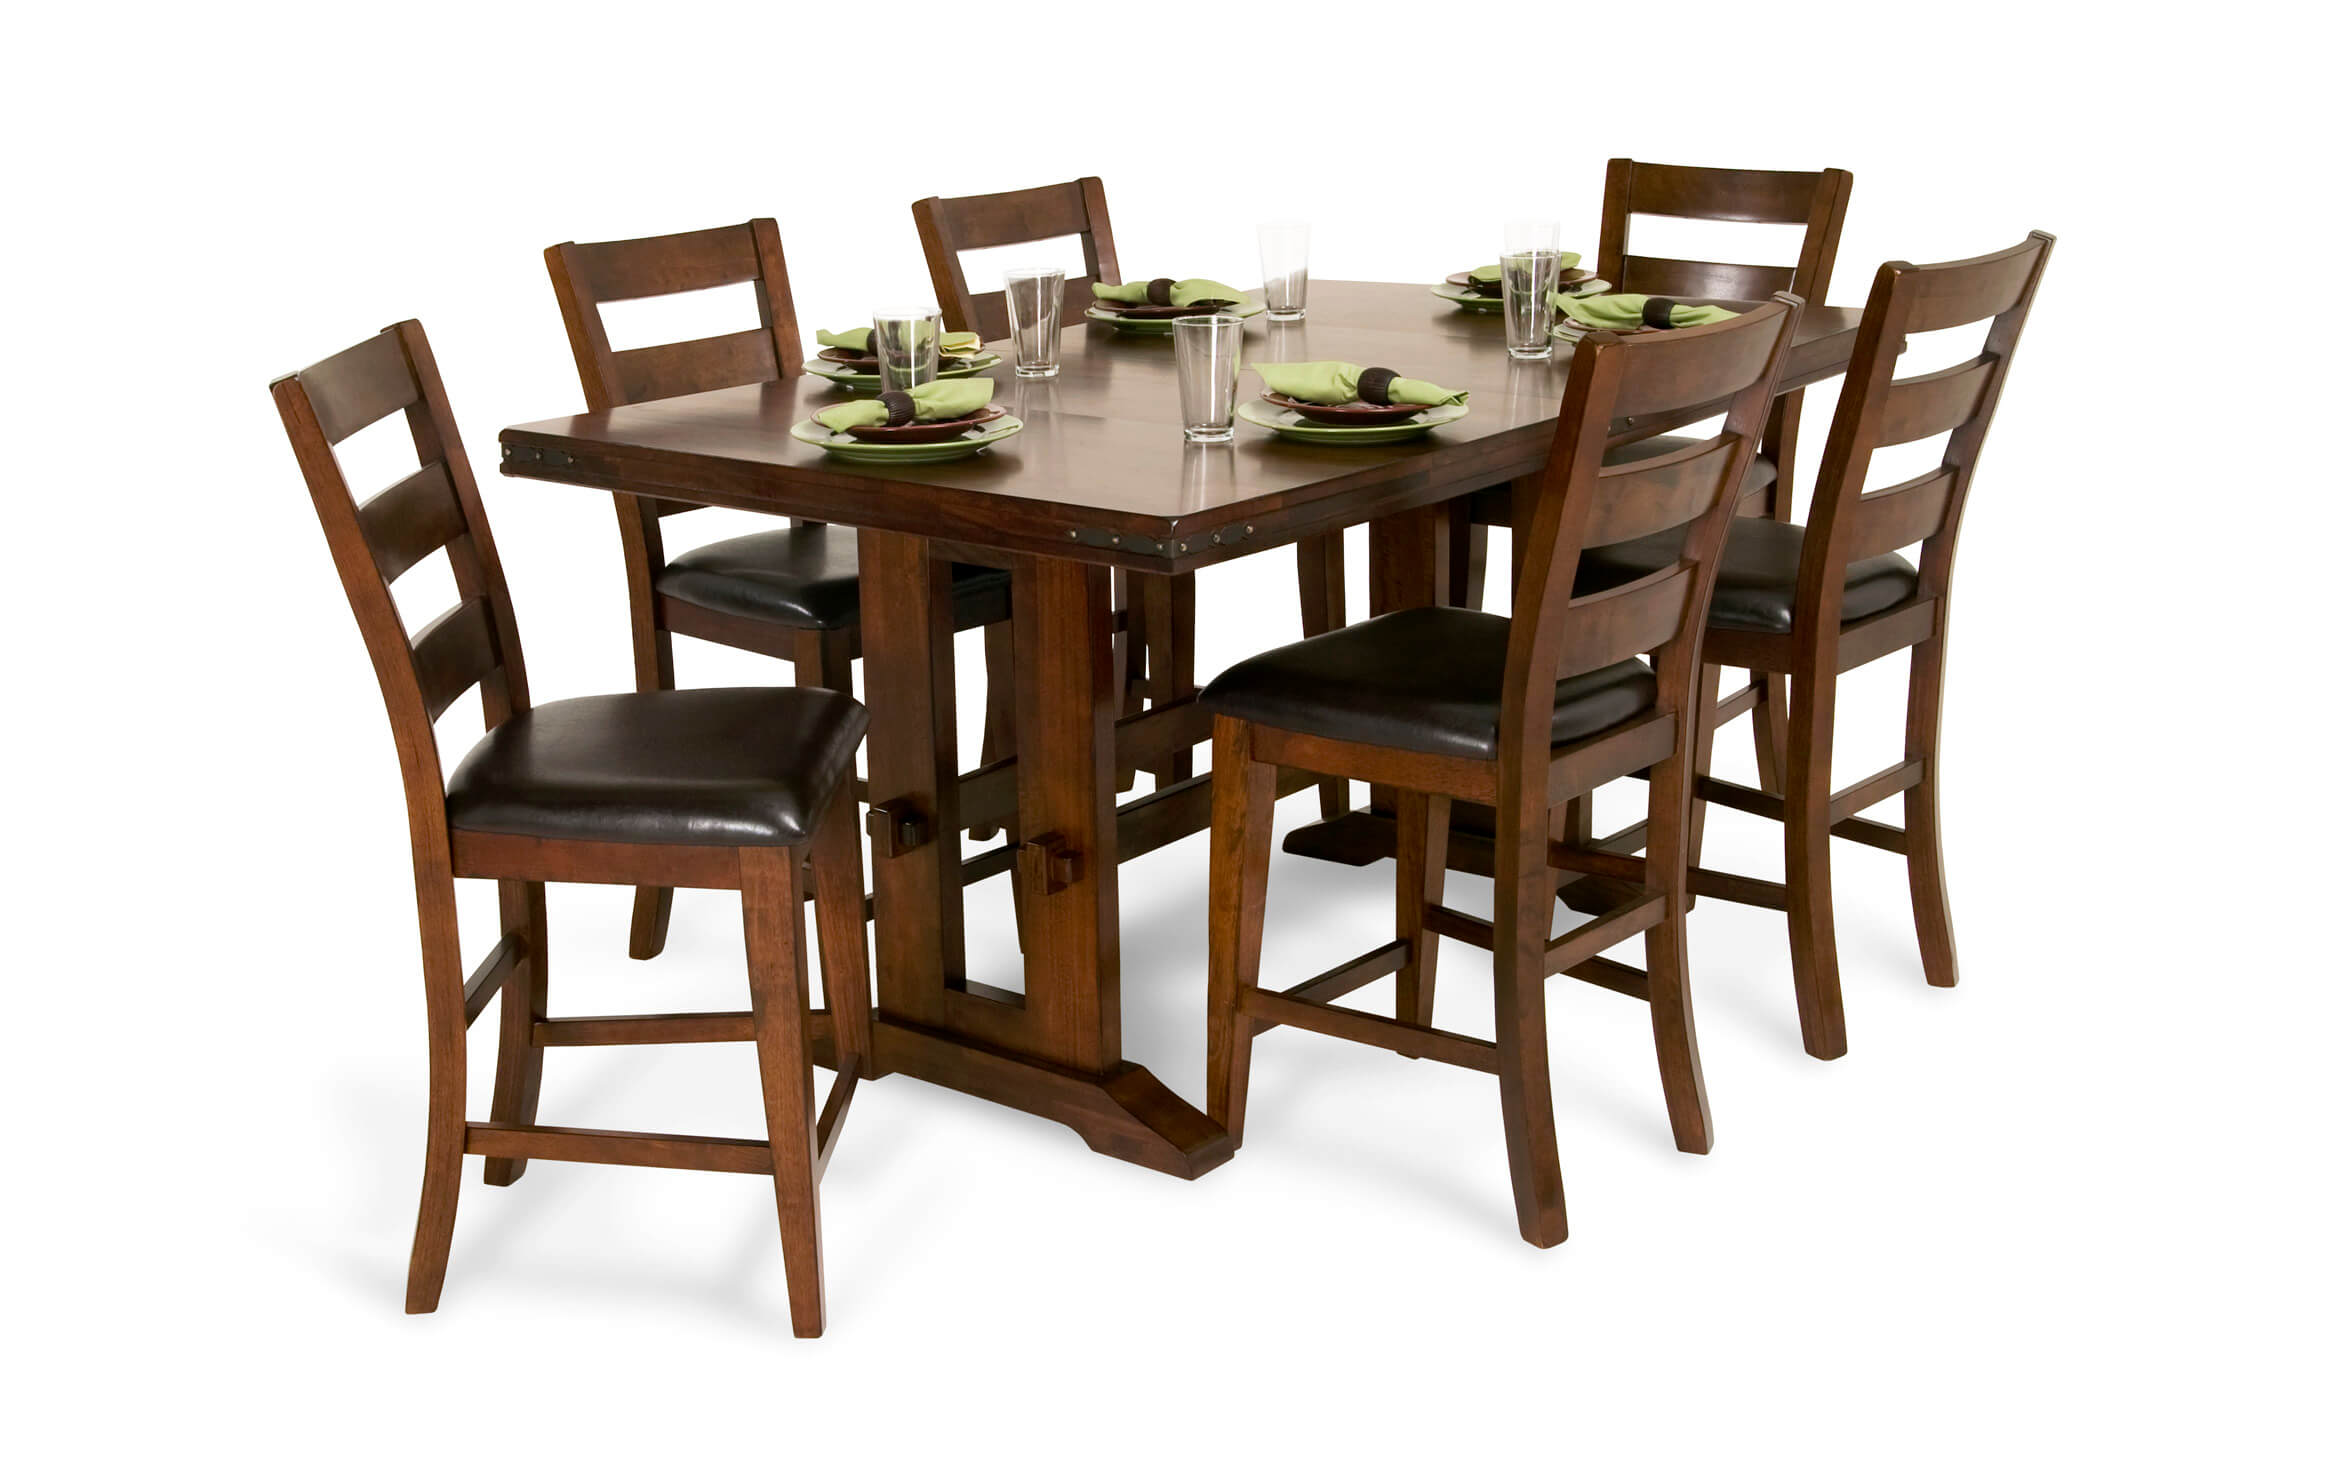 Enormous 7 Piece Counter Set Bob S, Bobs Furniture Dining Room